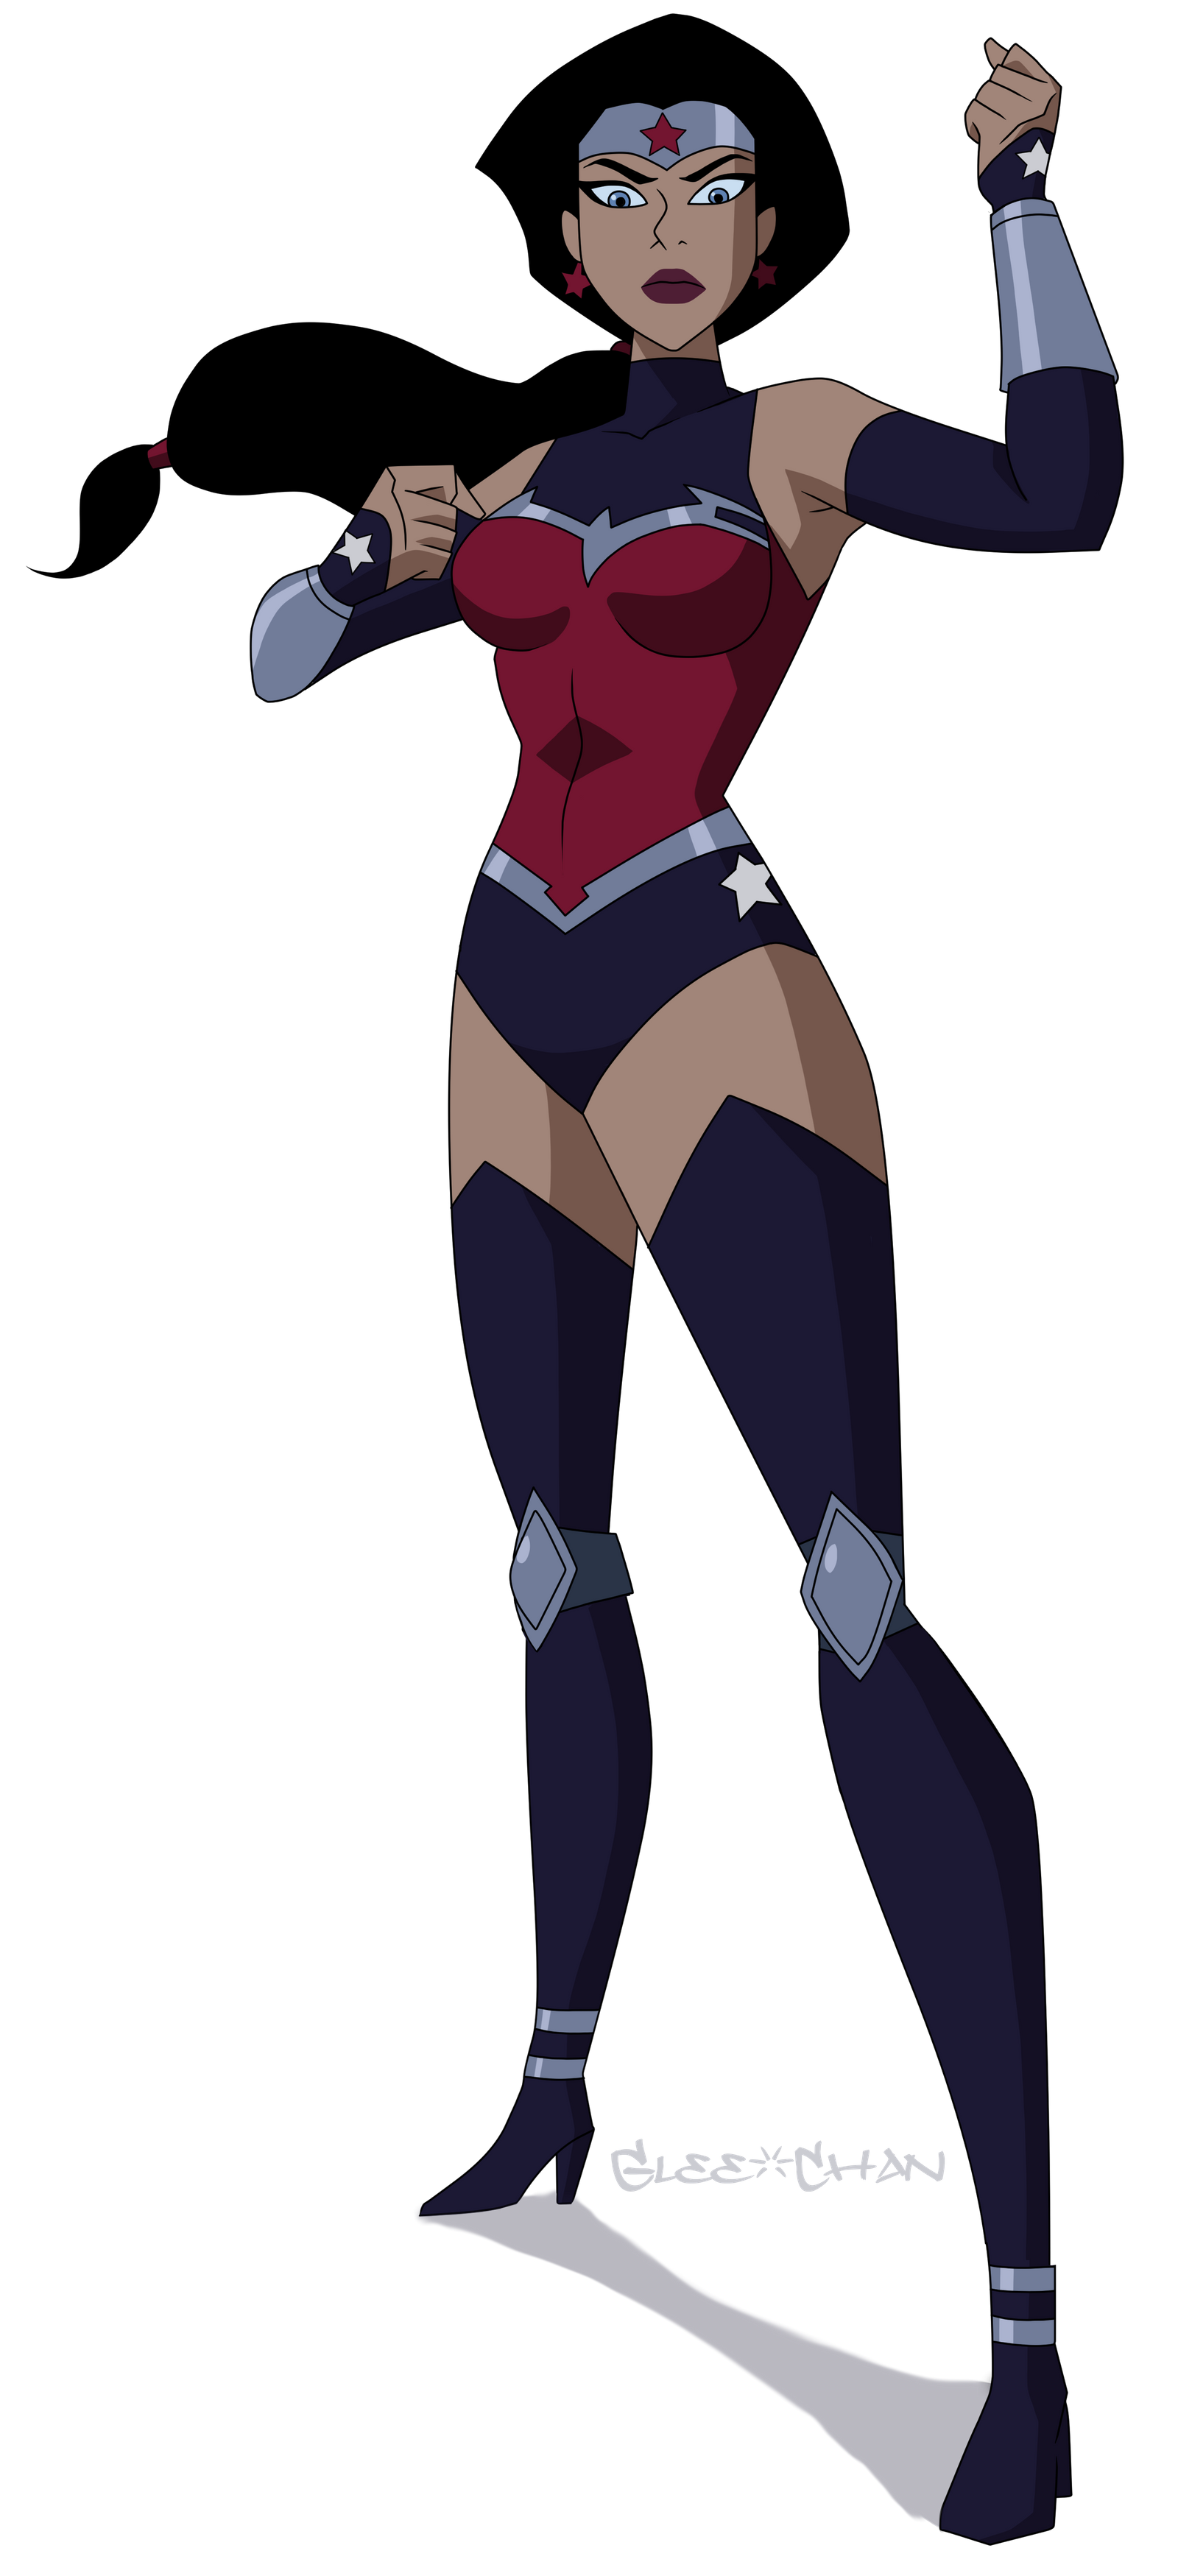 Wonder Woman Unlimited War By Glee Chan On Deviantart In 2020 Justice League Wonder Woman Female Comic Characters Justice League War